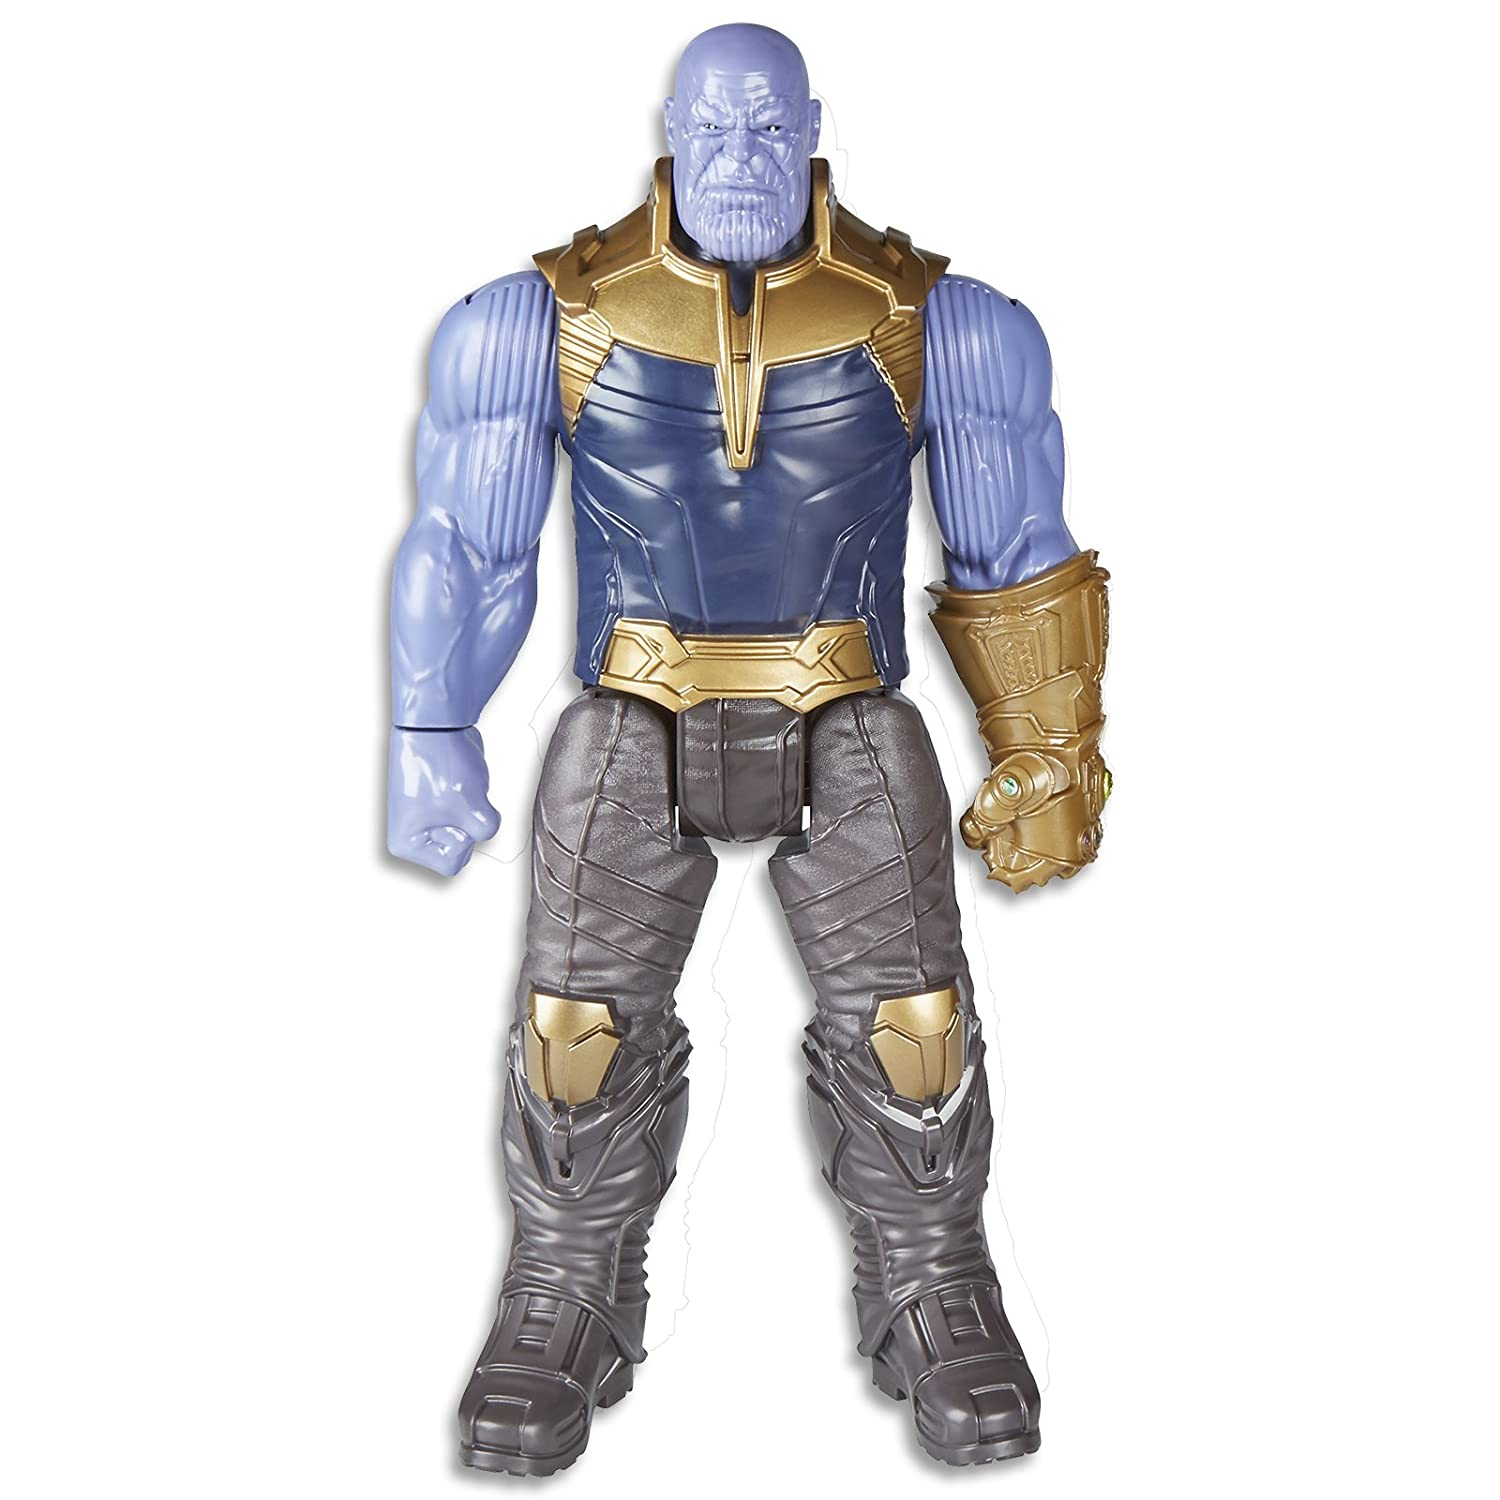 Avengers Marvel Infinity War Titan Hero Series Thanos with Titan Hero Power FX Port Hasbro E0572